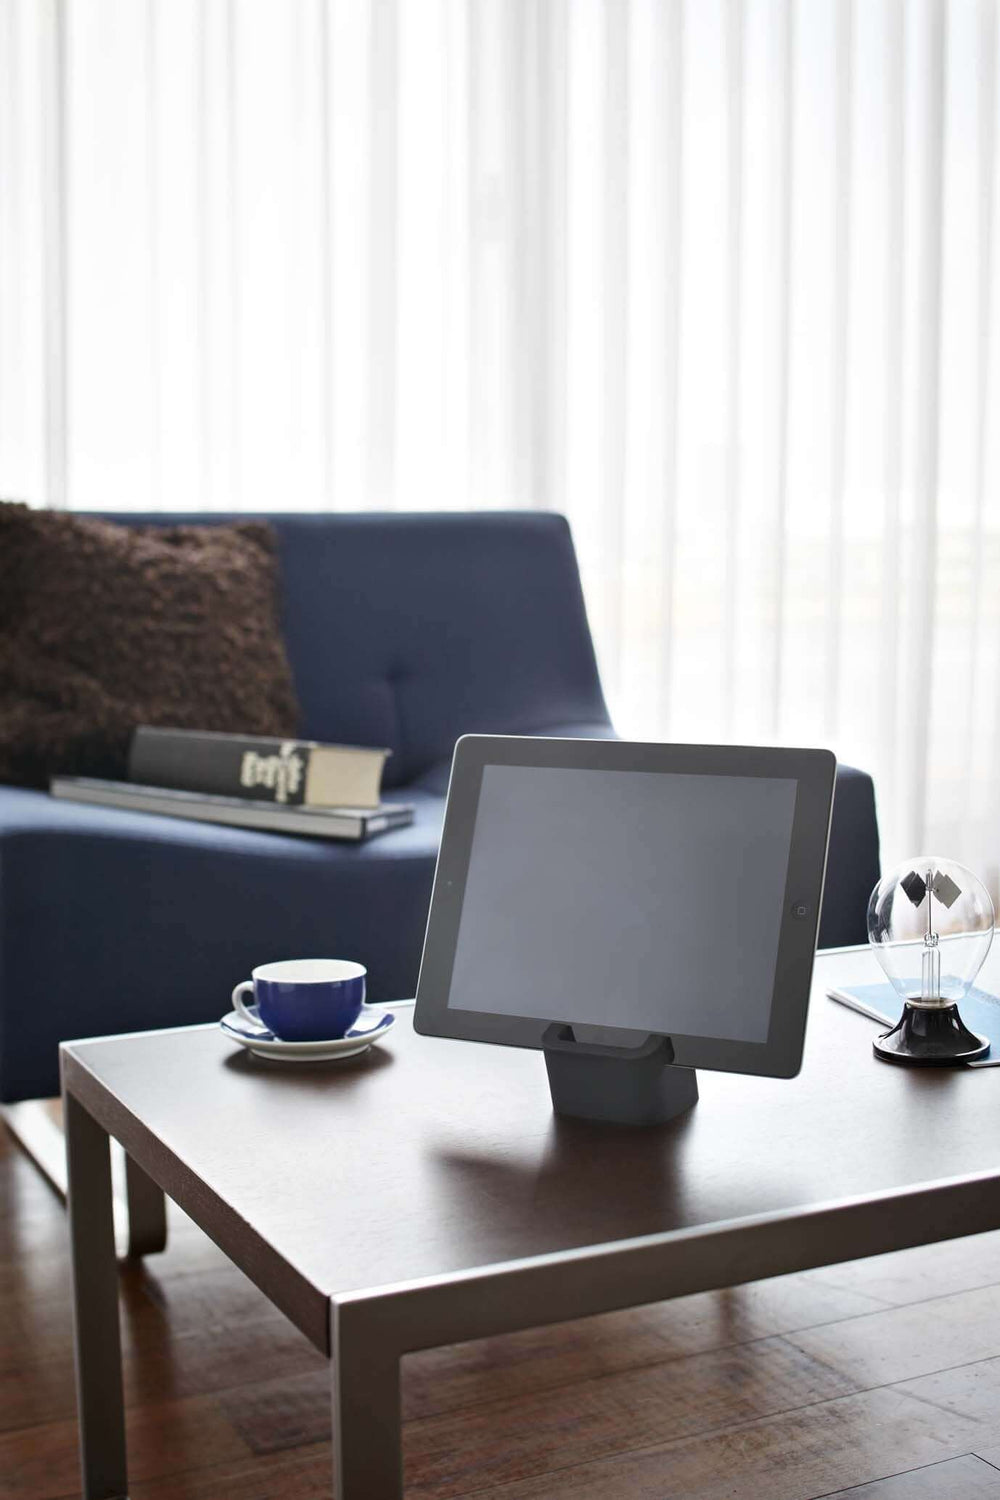 Yamazaki's black silicone cube holding a mobile tablet on a coffee table in living room